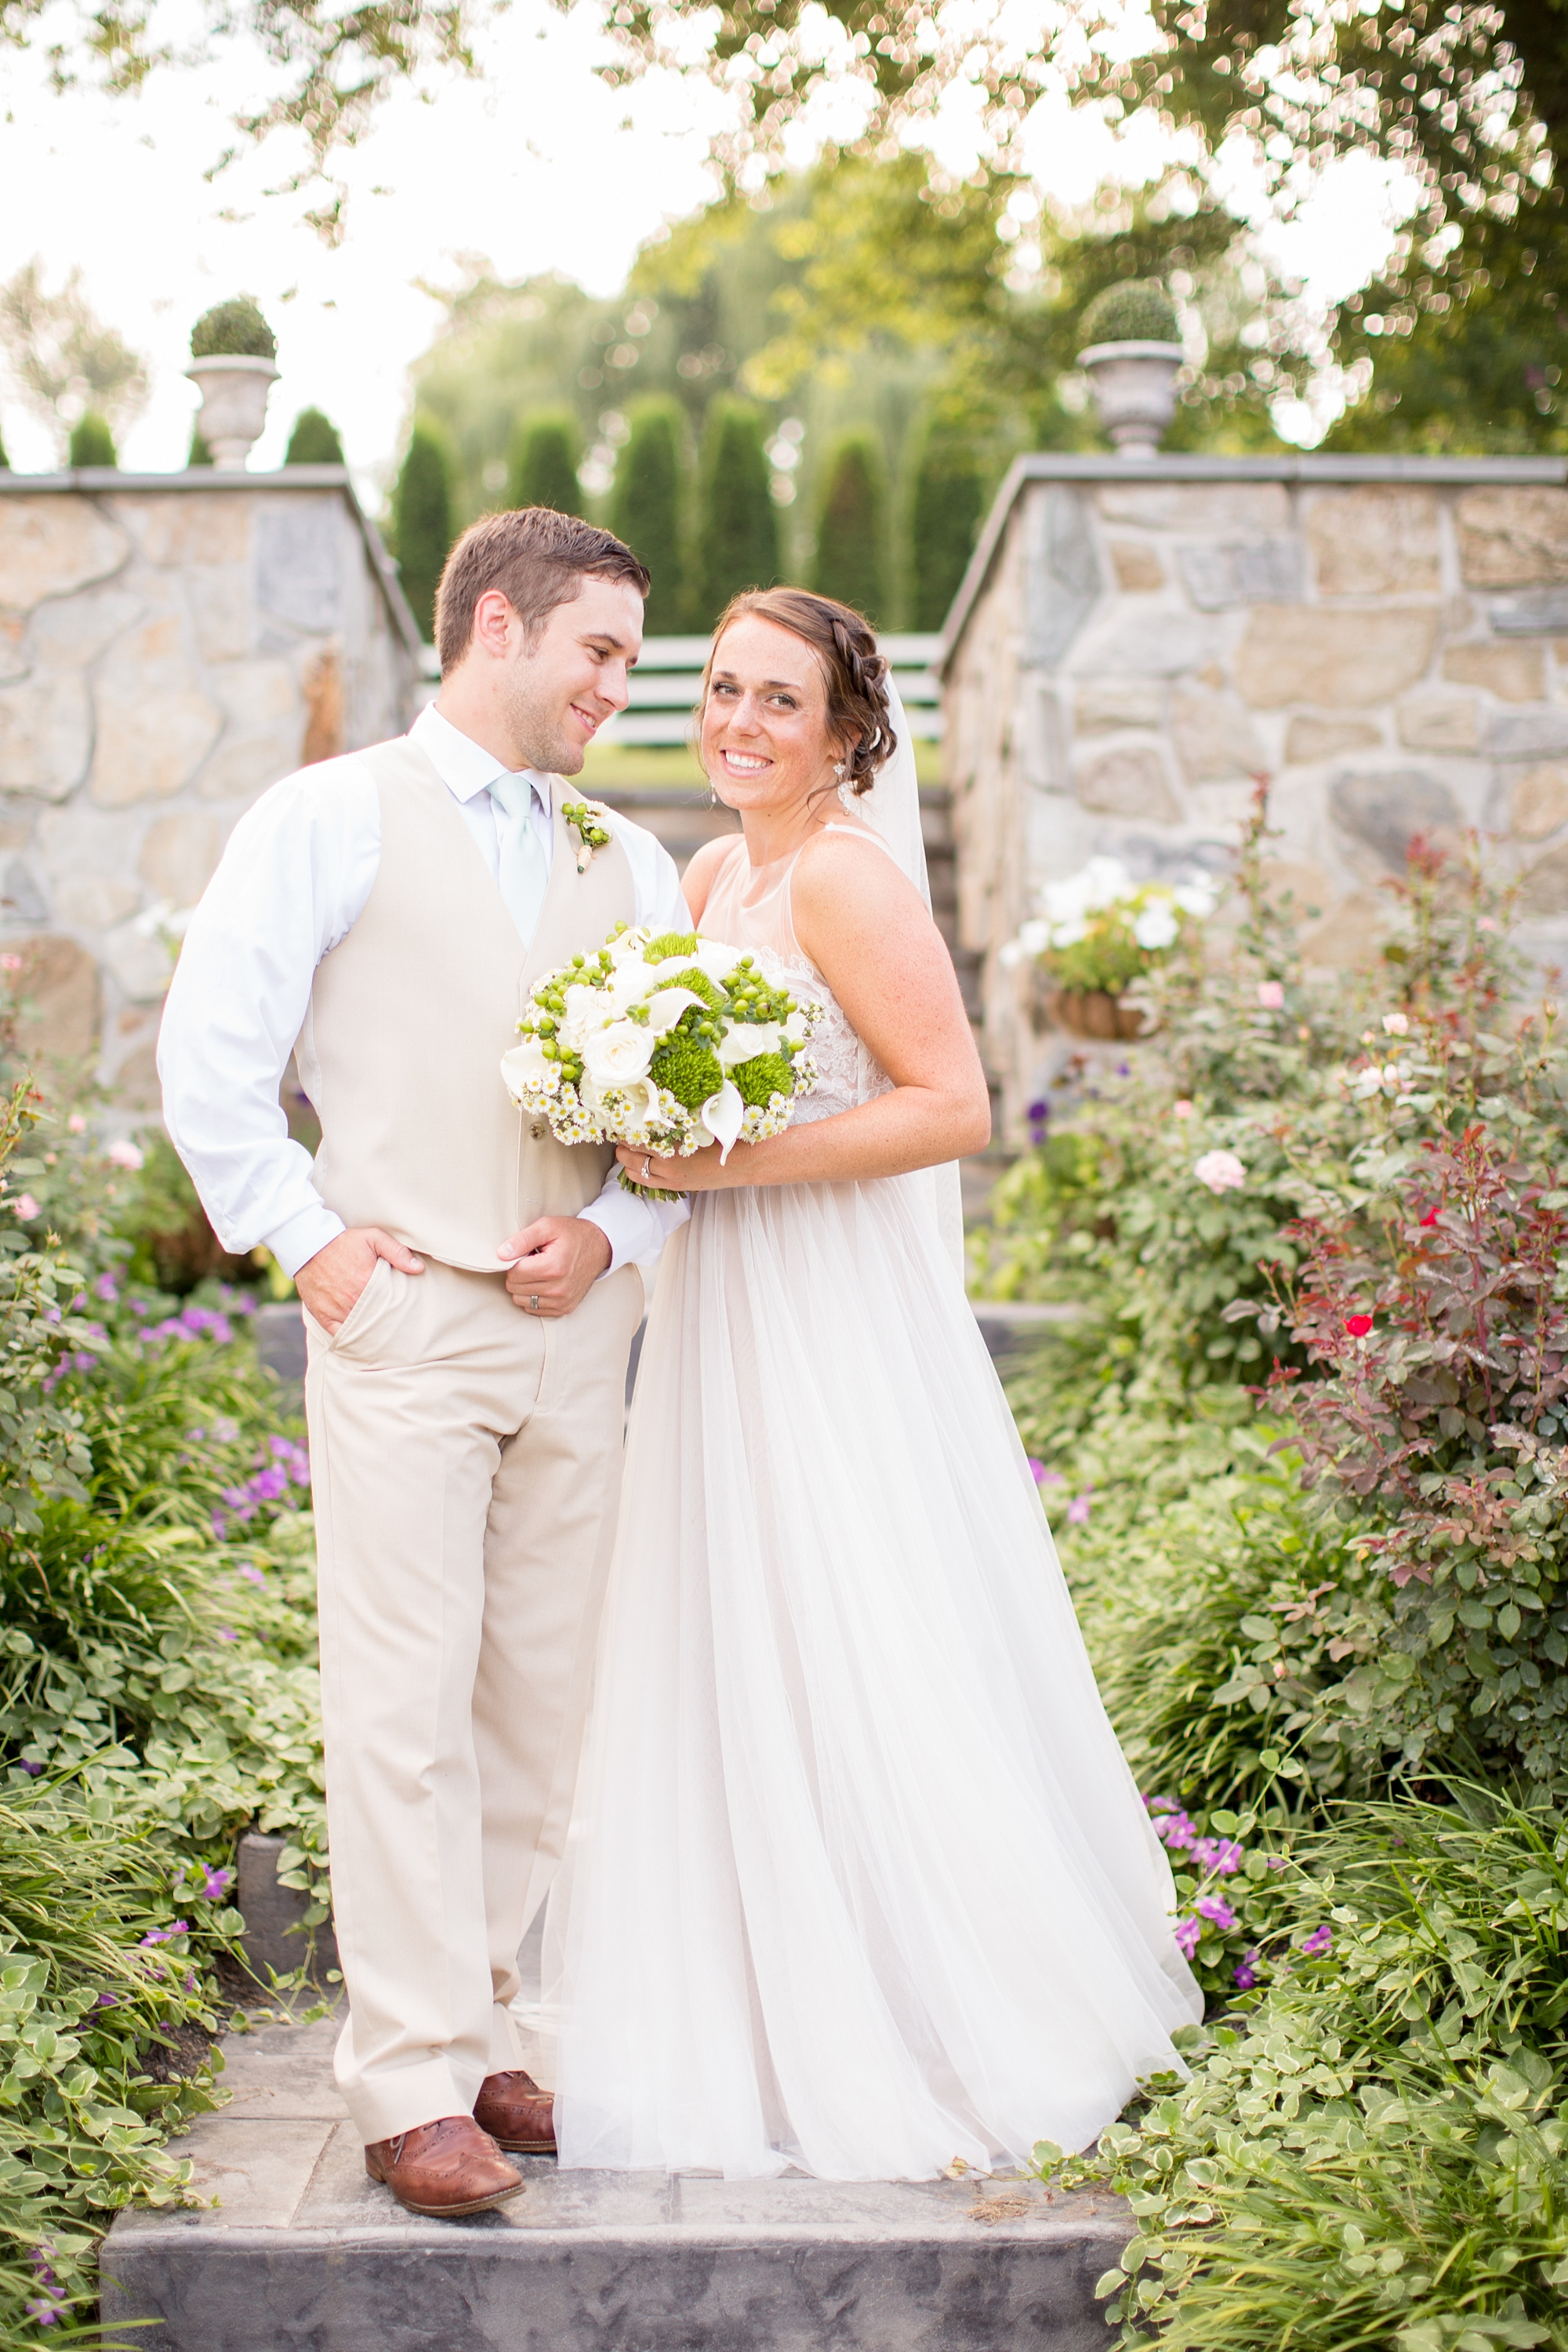 Herndon 5-Bride & Groom Portraits-875_anna grace photography baltimore maryland wedding photographer pond view farm photo.jpg